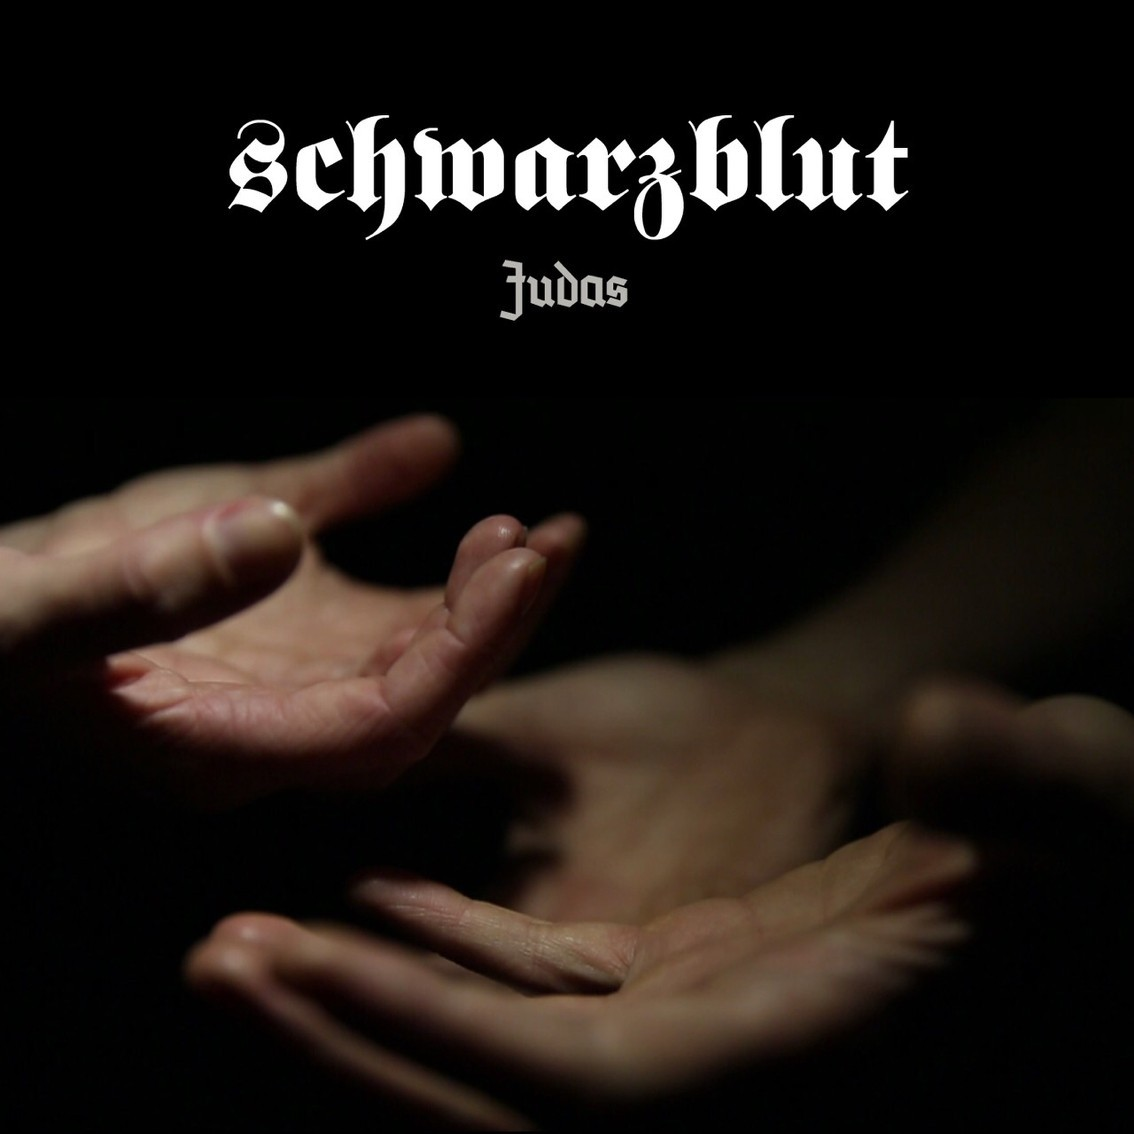 Schwarzblut launches teaser and pre-orders download EP 'Judas'